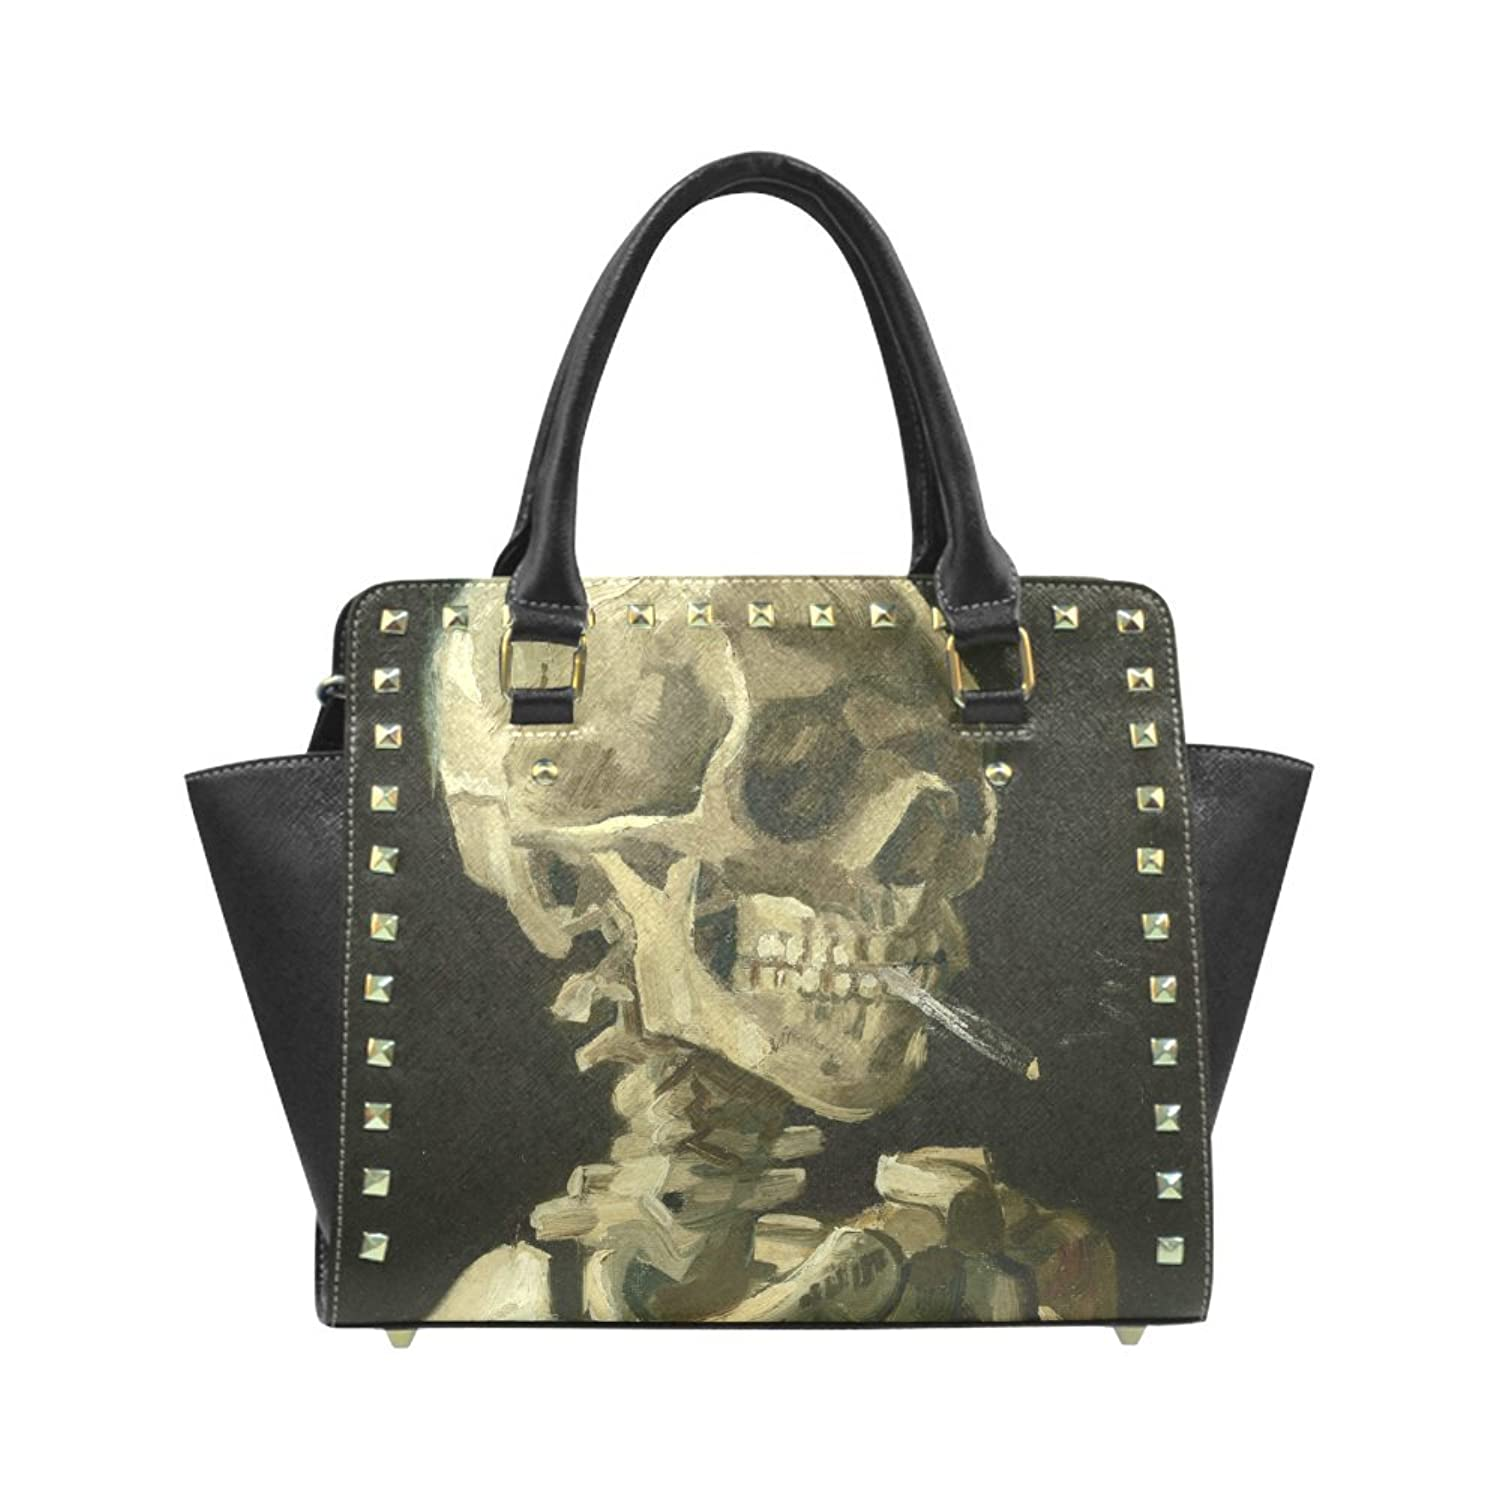 Smoking Skull Rivet PU Leahter Shoulder Handbag For Fashion Women/Girls